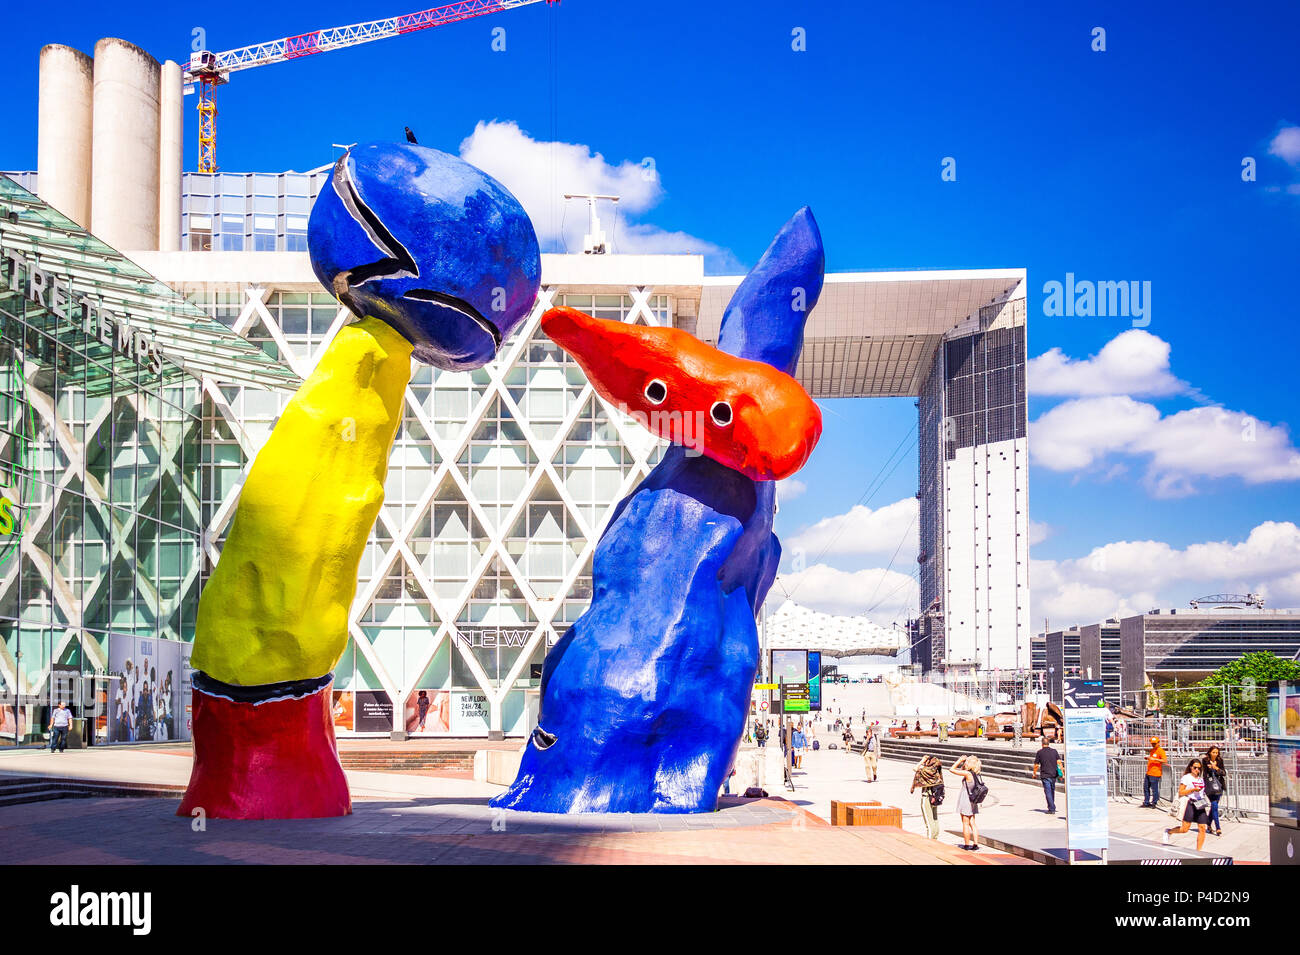 """""""Personnages Fantastiques"""" is a colourful outdoor artwork and represent two dancers playing together amongst the high-rises at La Defense,Paris, Stock Photo"""